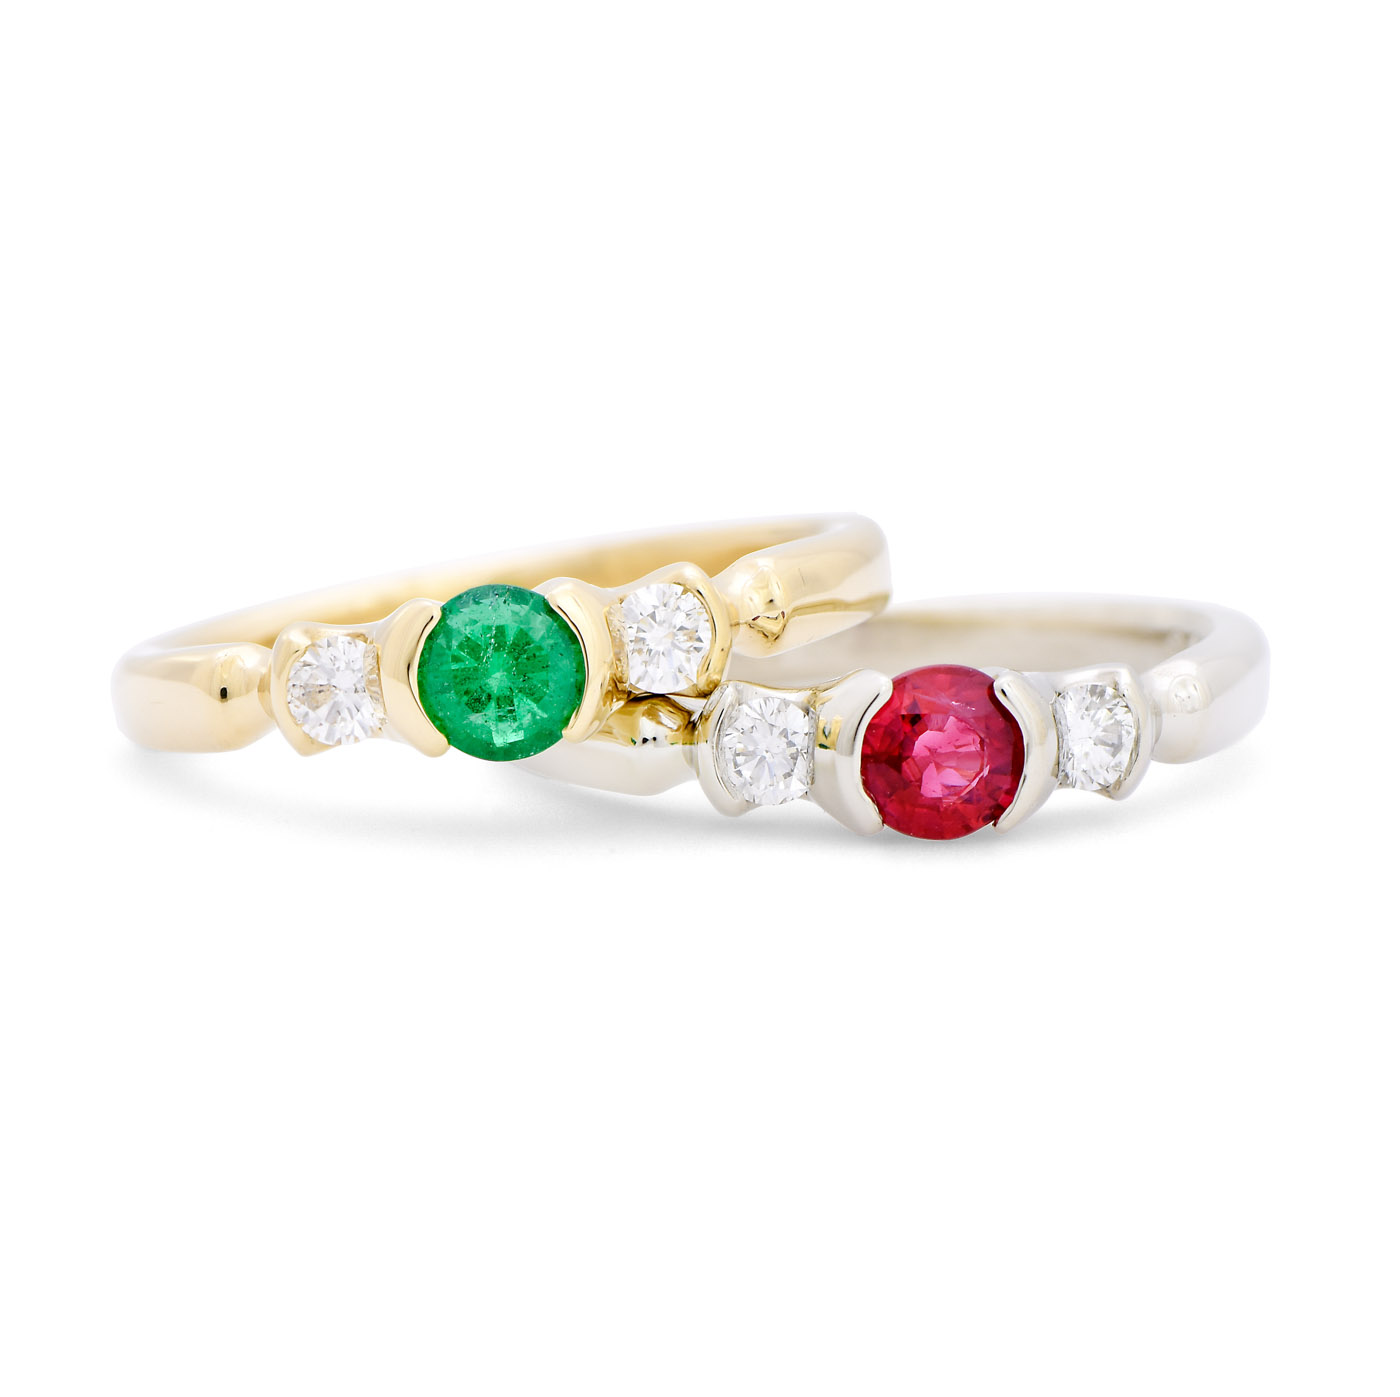 Ruby, Emerald, and Diamond Three Stone Ring